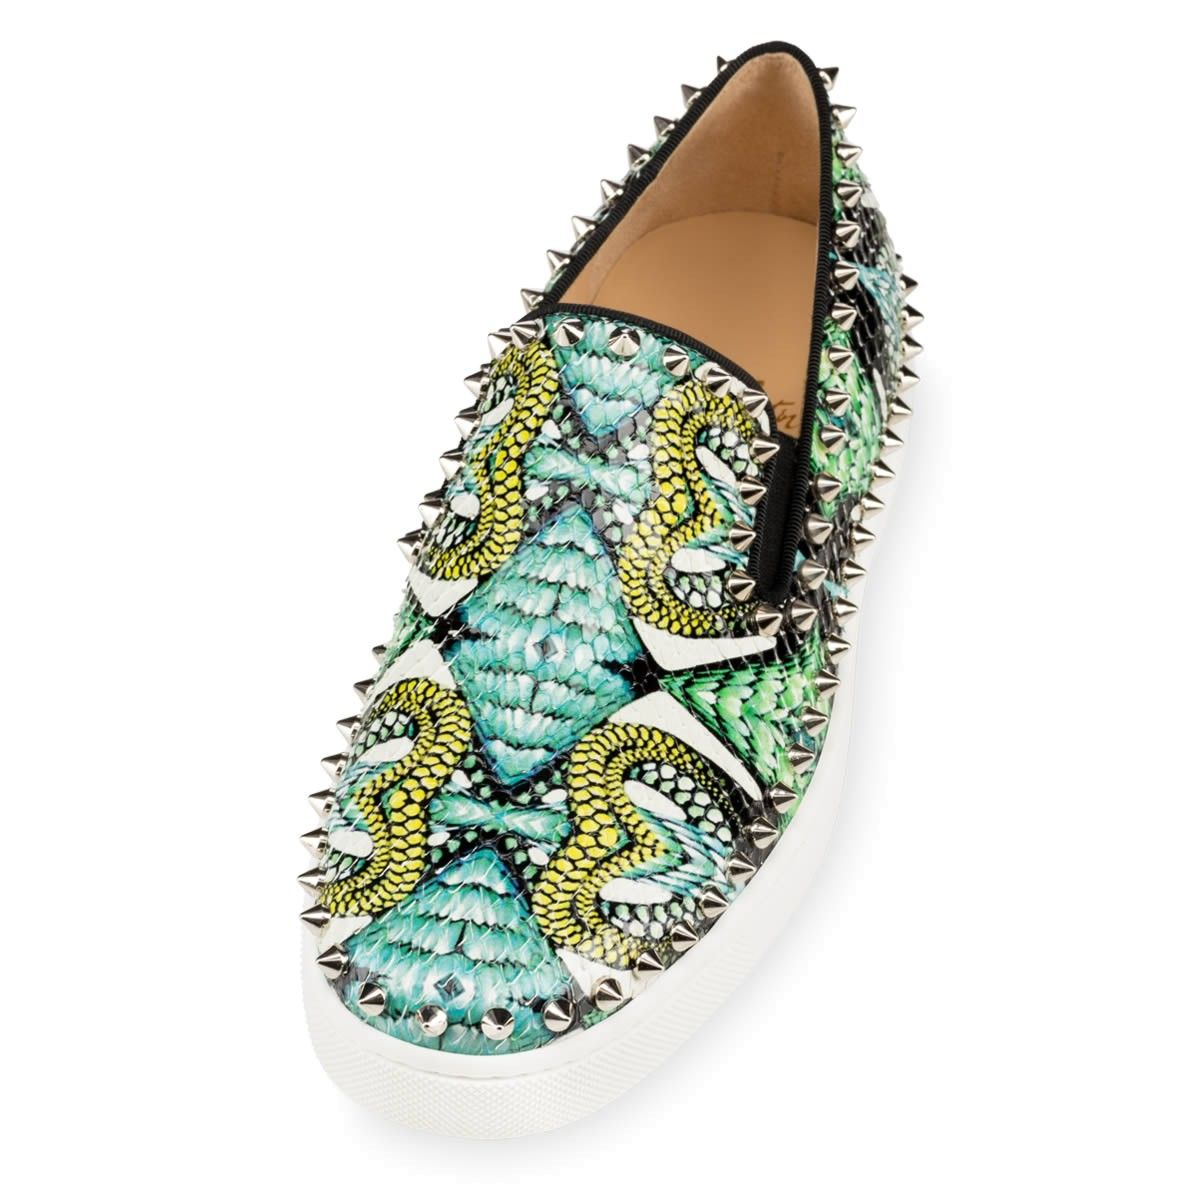 94db507e3bea one day you will be owning and walking down the street in my very own Christian  Louboutin shoes. Just click the picture. christian louboutin  women  high  ...